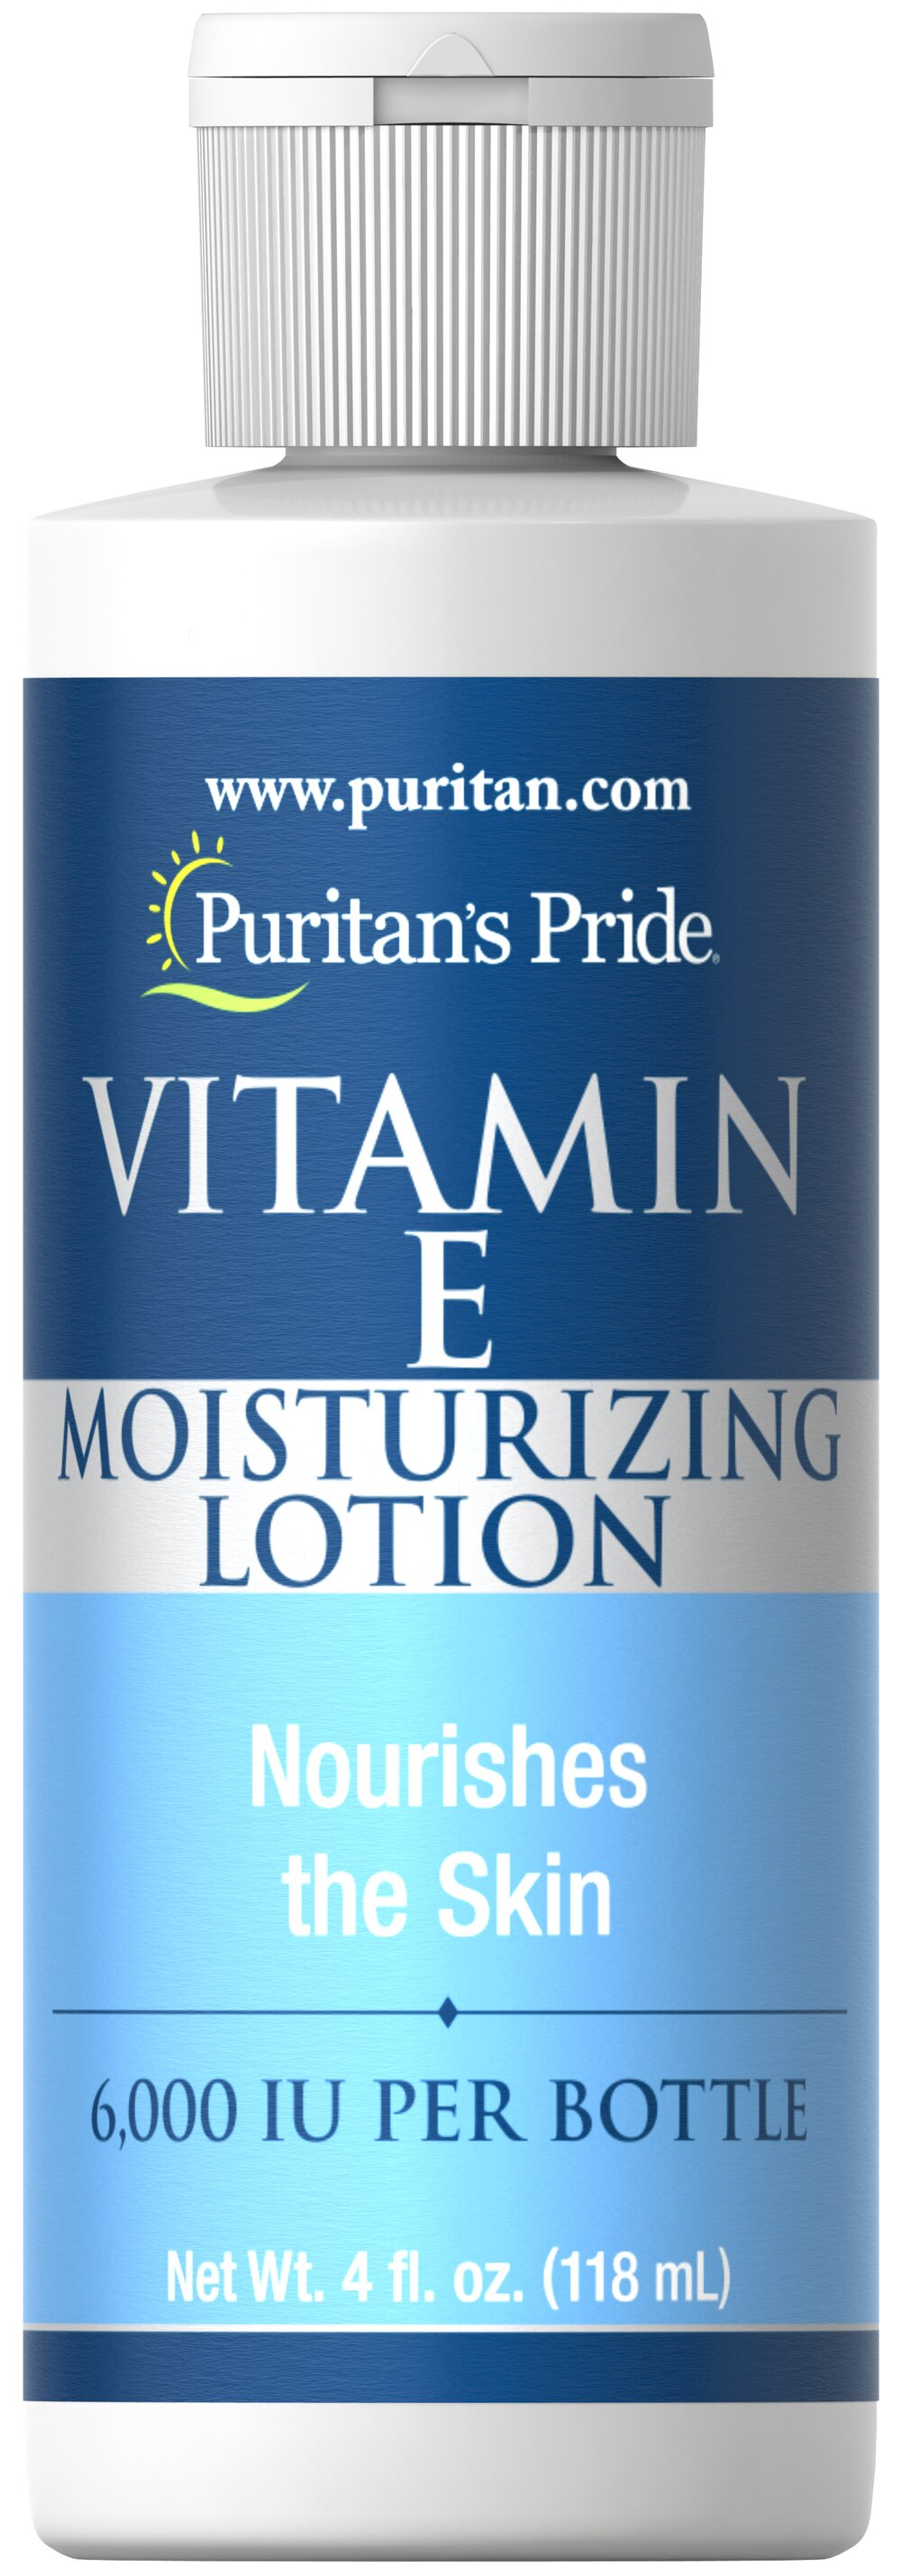 Vitamin E Moisturizing Lotion 6,000 IU <p>The All-Over Body Moisturizer</p>  <p>Now give your skin the natural benefits of Vitamin E Lotion. This rich lotion gives you 6,000 IU of Vitamin E per bottle with the added moisturizing benefits of natural Wheat Germ Oil. The protective emollient action maintains the natural moisture balance of the skin leaving even the driest skin smooth all over.</p> 4 oz Lotion 6000 IU $6.88